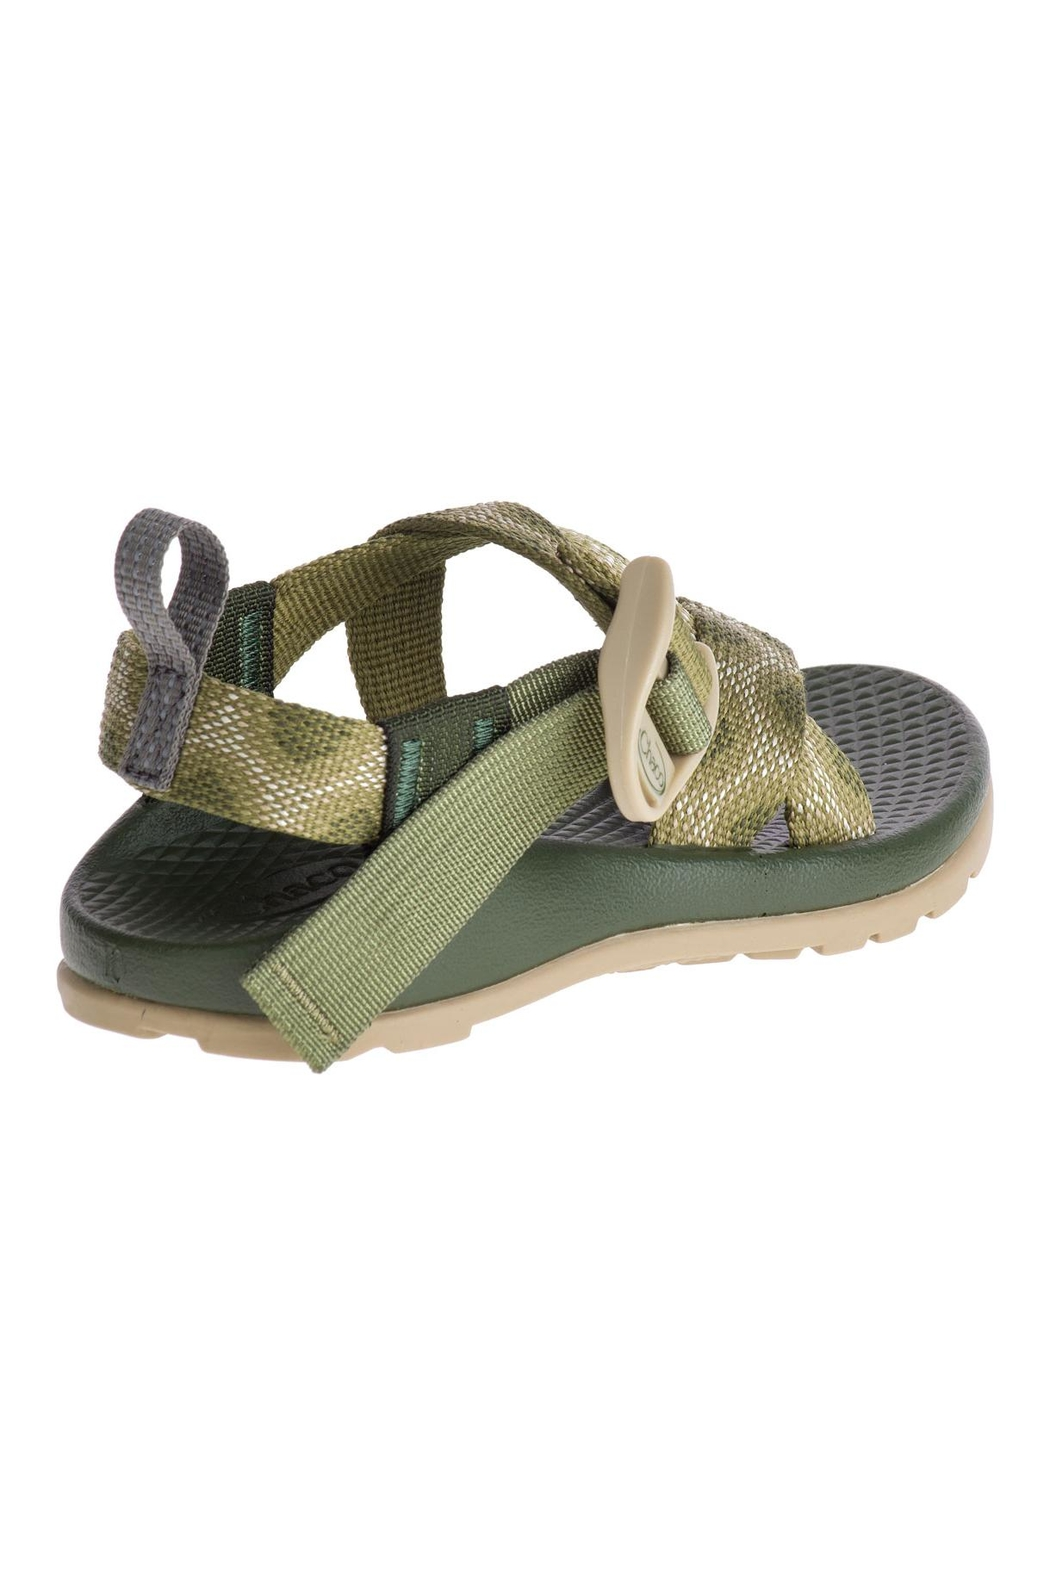 Chaco Kid's Z/1 Sandal - Back Cropped Image